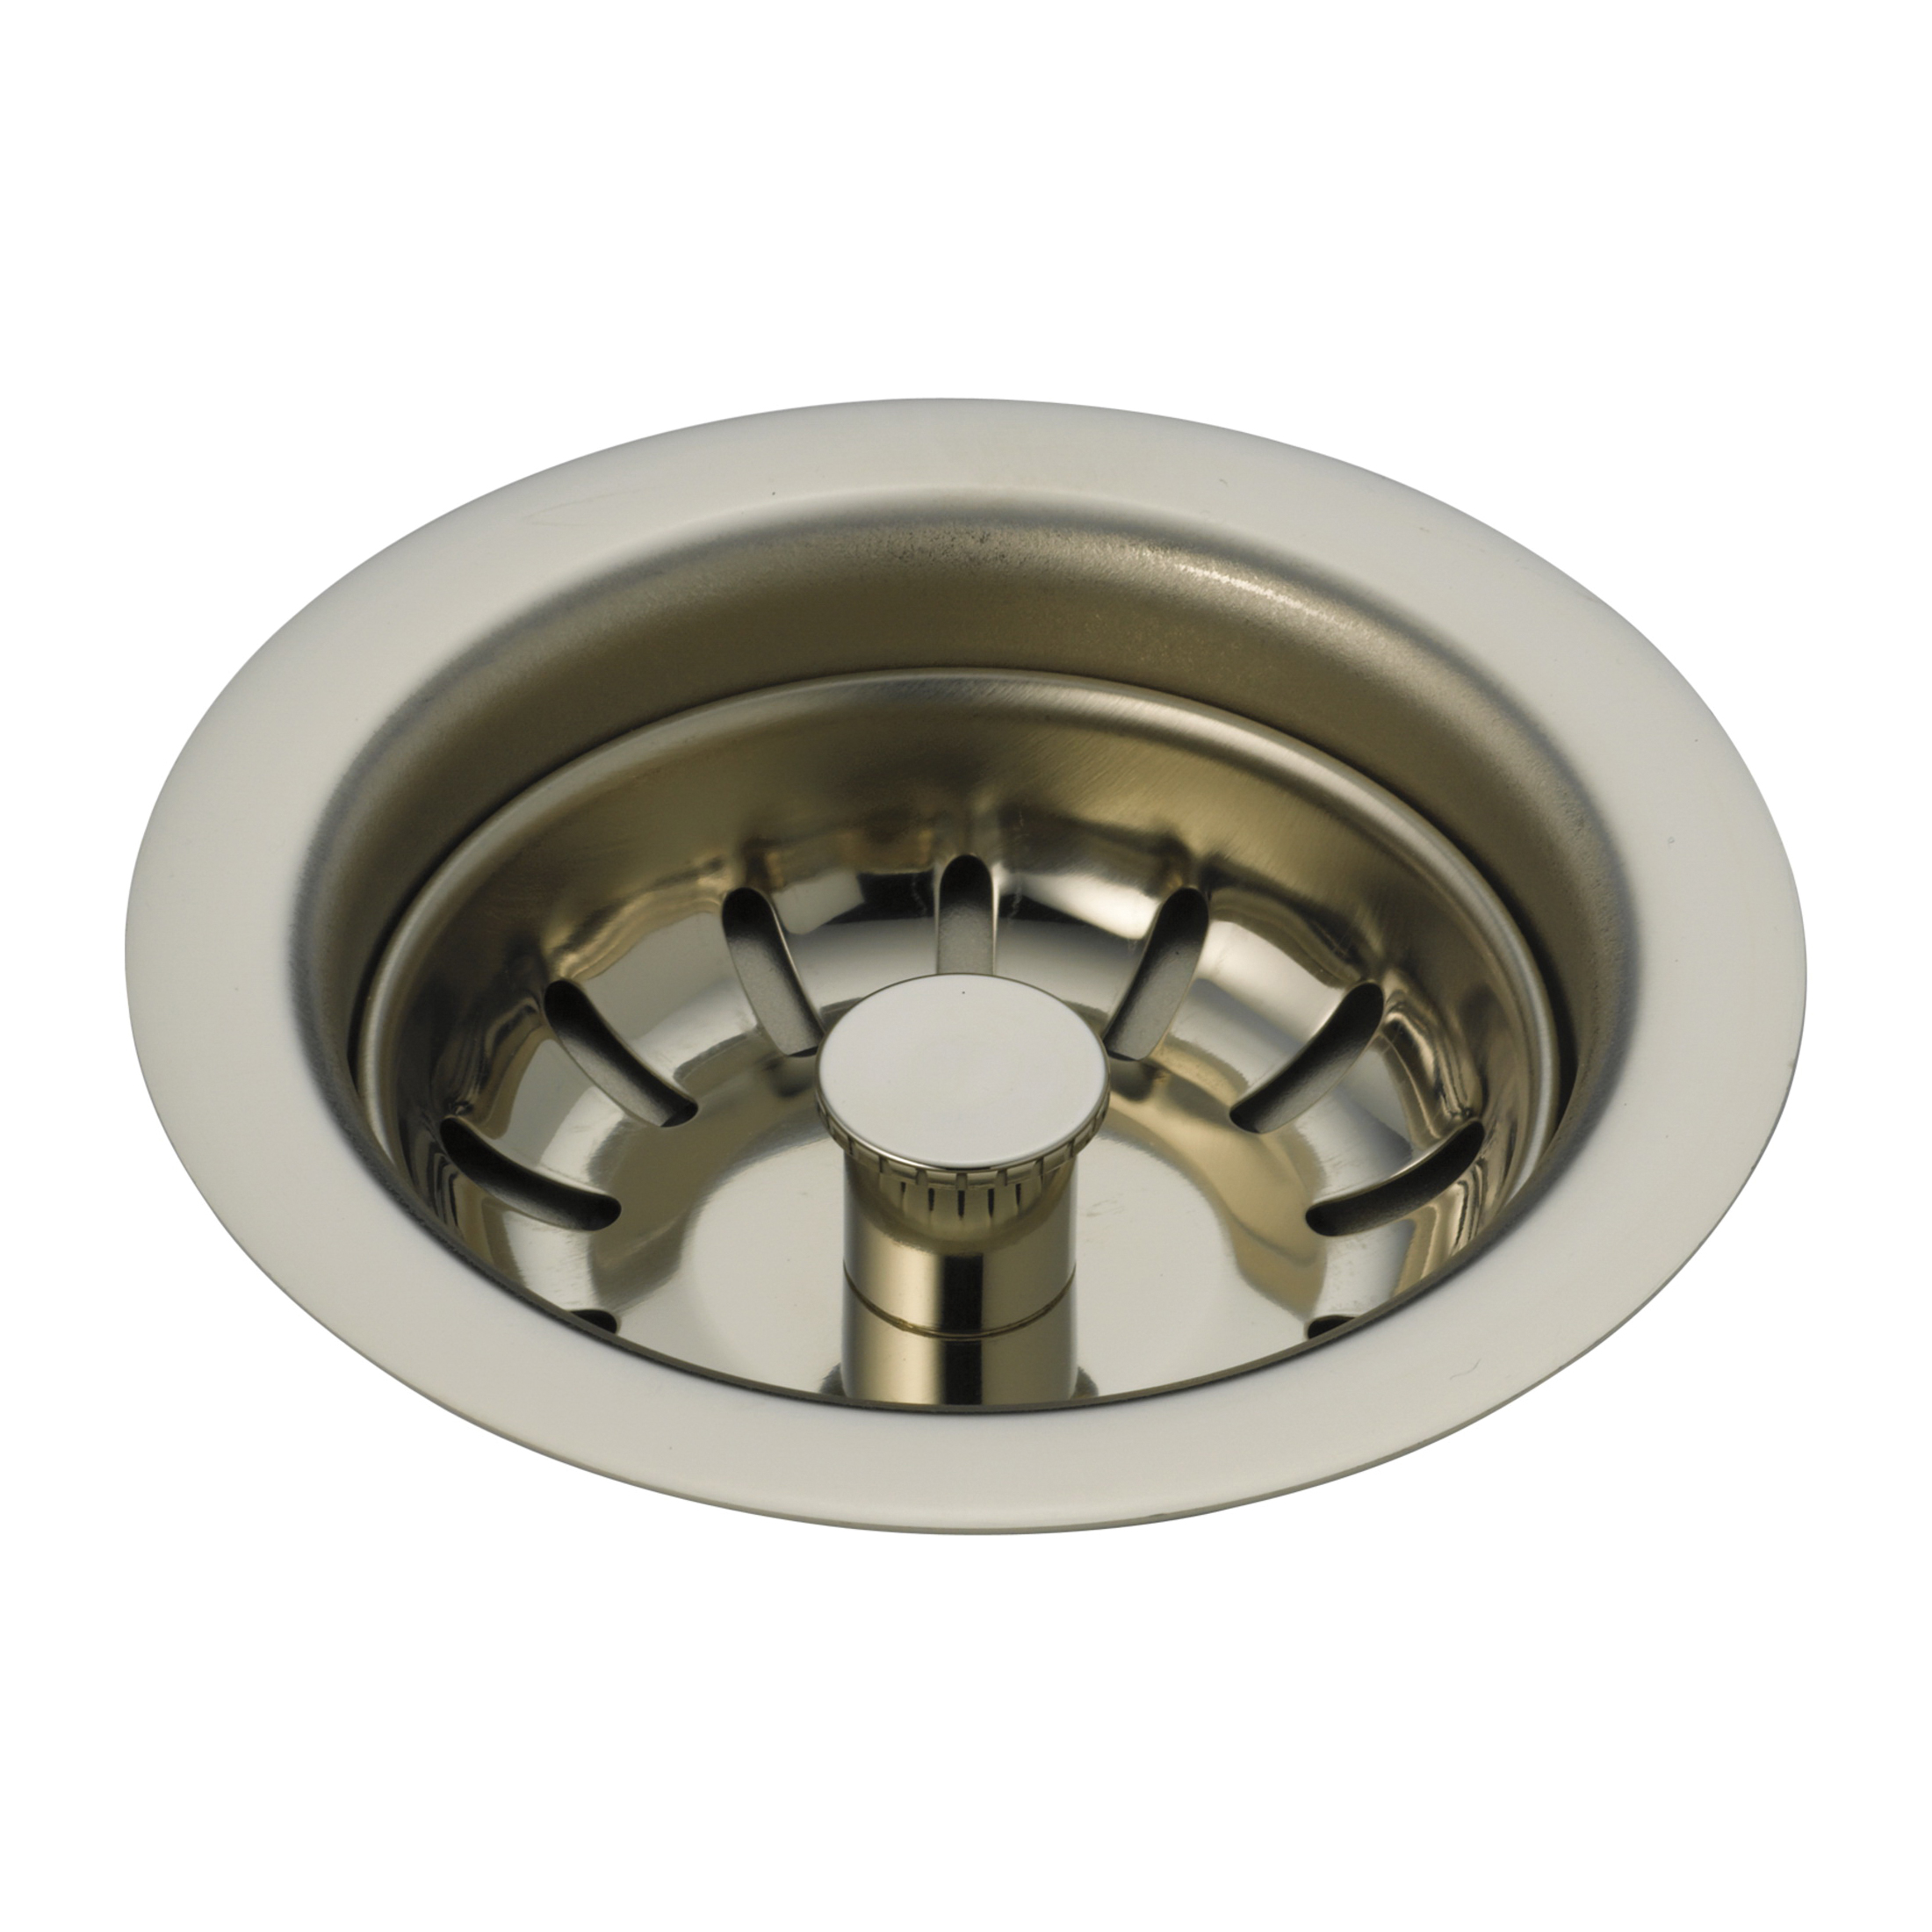 Brizo® 69050-PN Flange and Strainer, 1-1/2 x 11-1/2 in Nominal, NPSM, Brass, Polished Nickel, Import